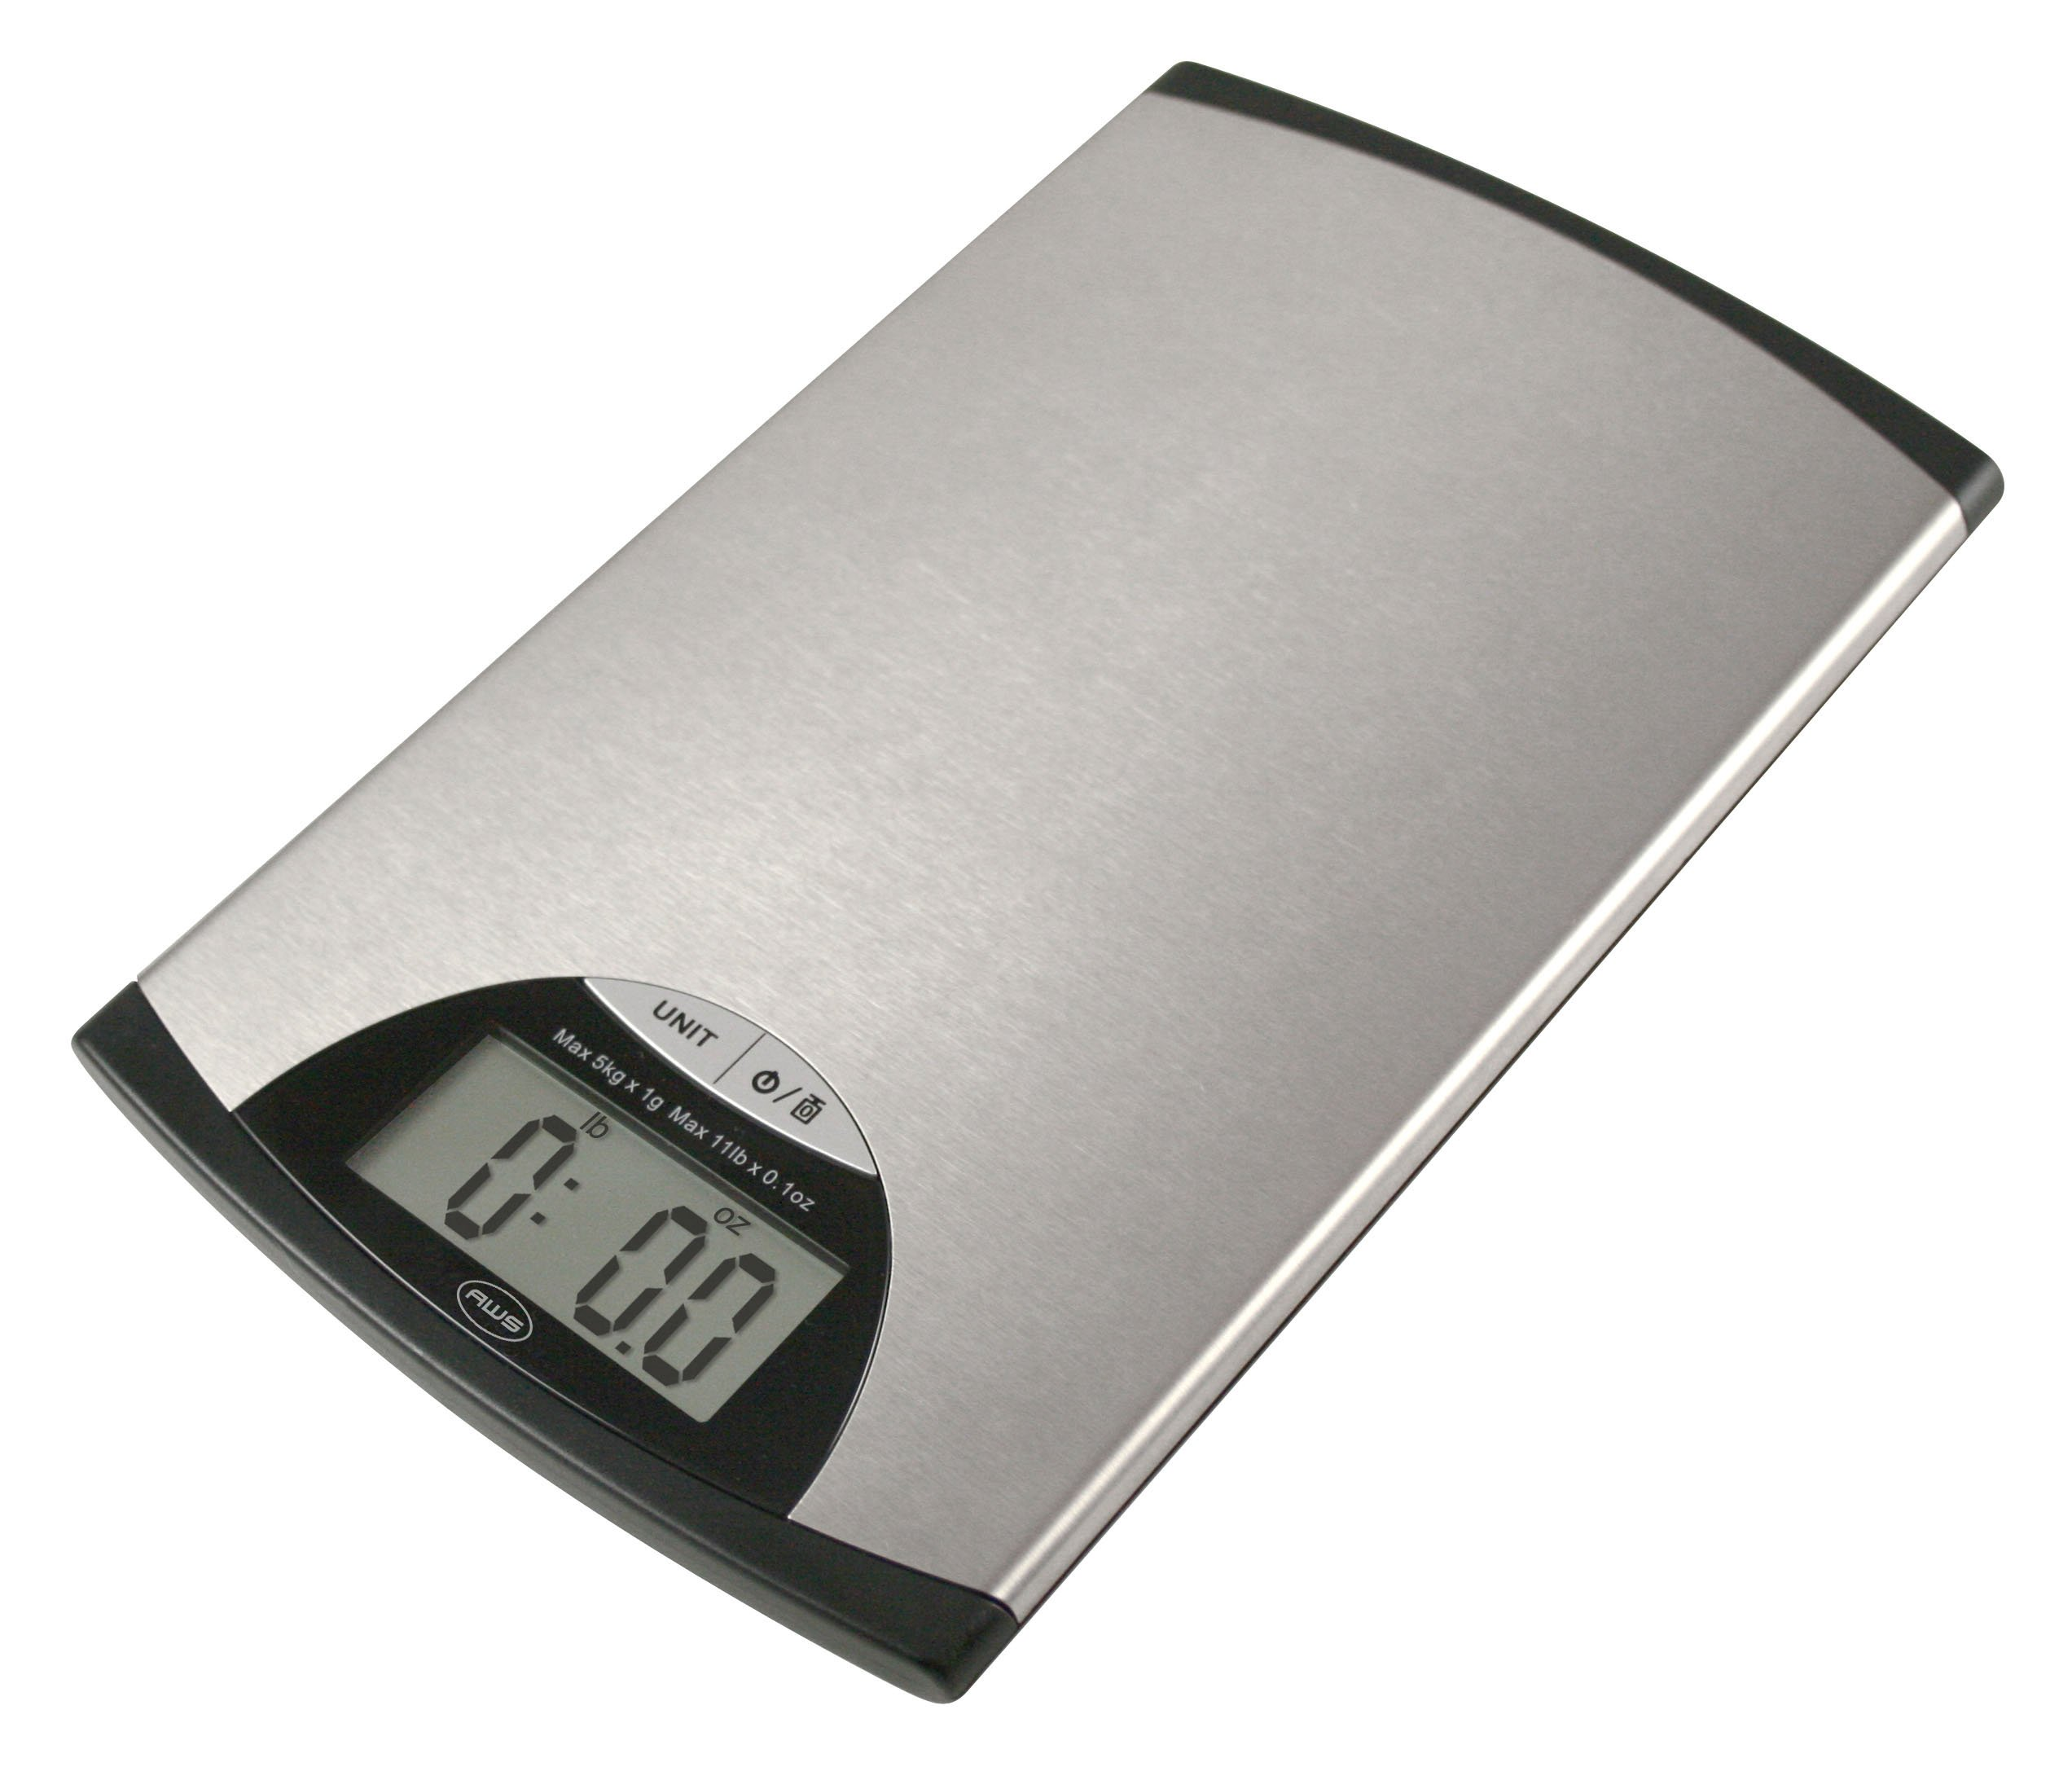 American Weigh Scales EDGE-5K Stainless Steel Digital Kitchen Scale, 11-Pound by 0.1-Ounce